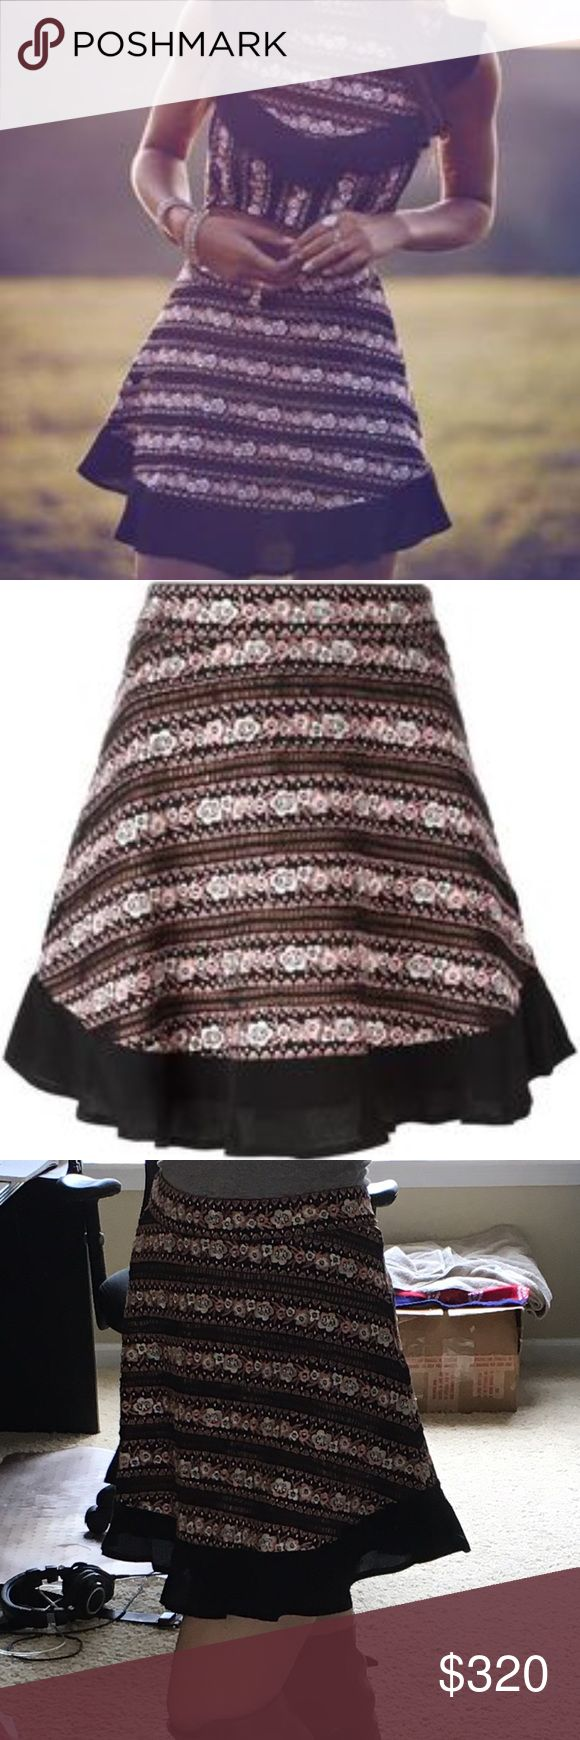 FL&L Persephone mini skirt nwt Perfect condition, sold out. No trades, bundle discounts. True to size small. Crosslisted elsewhere For Love and Lemons Skirts Mini